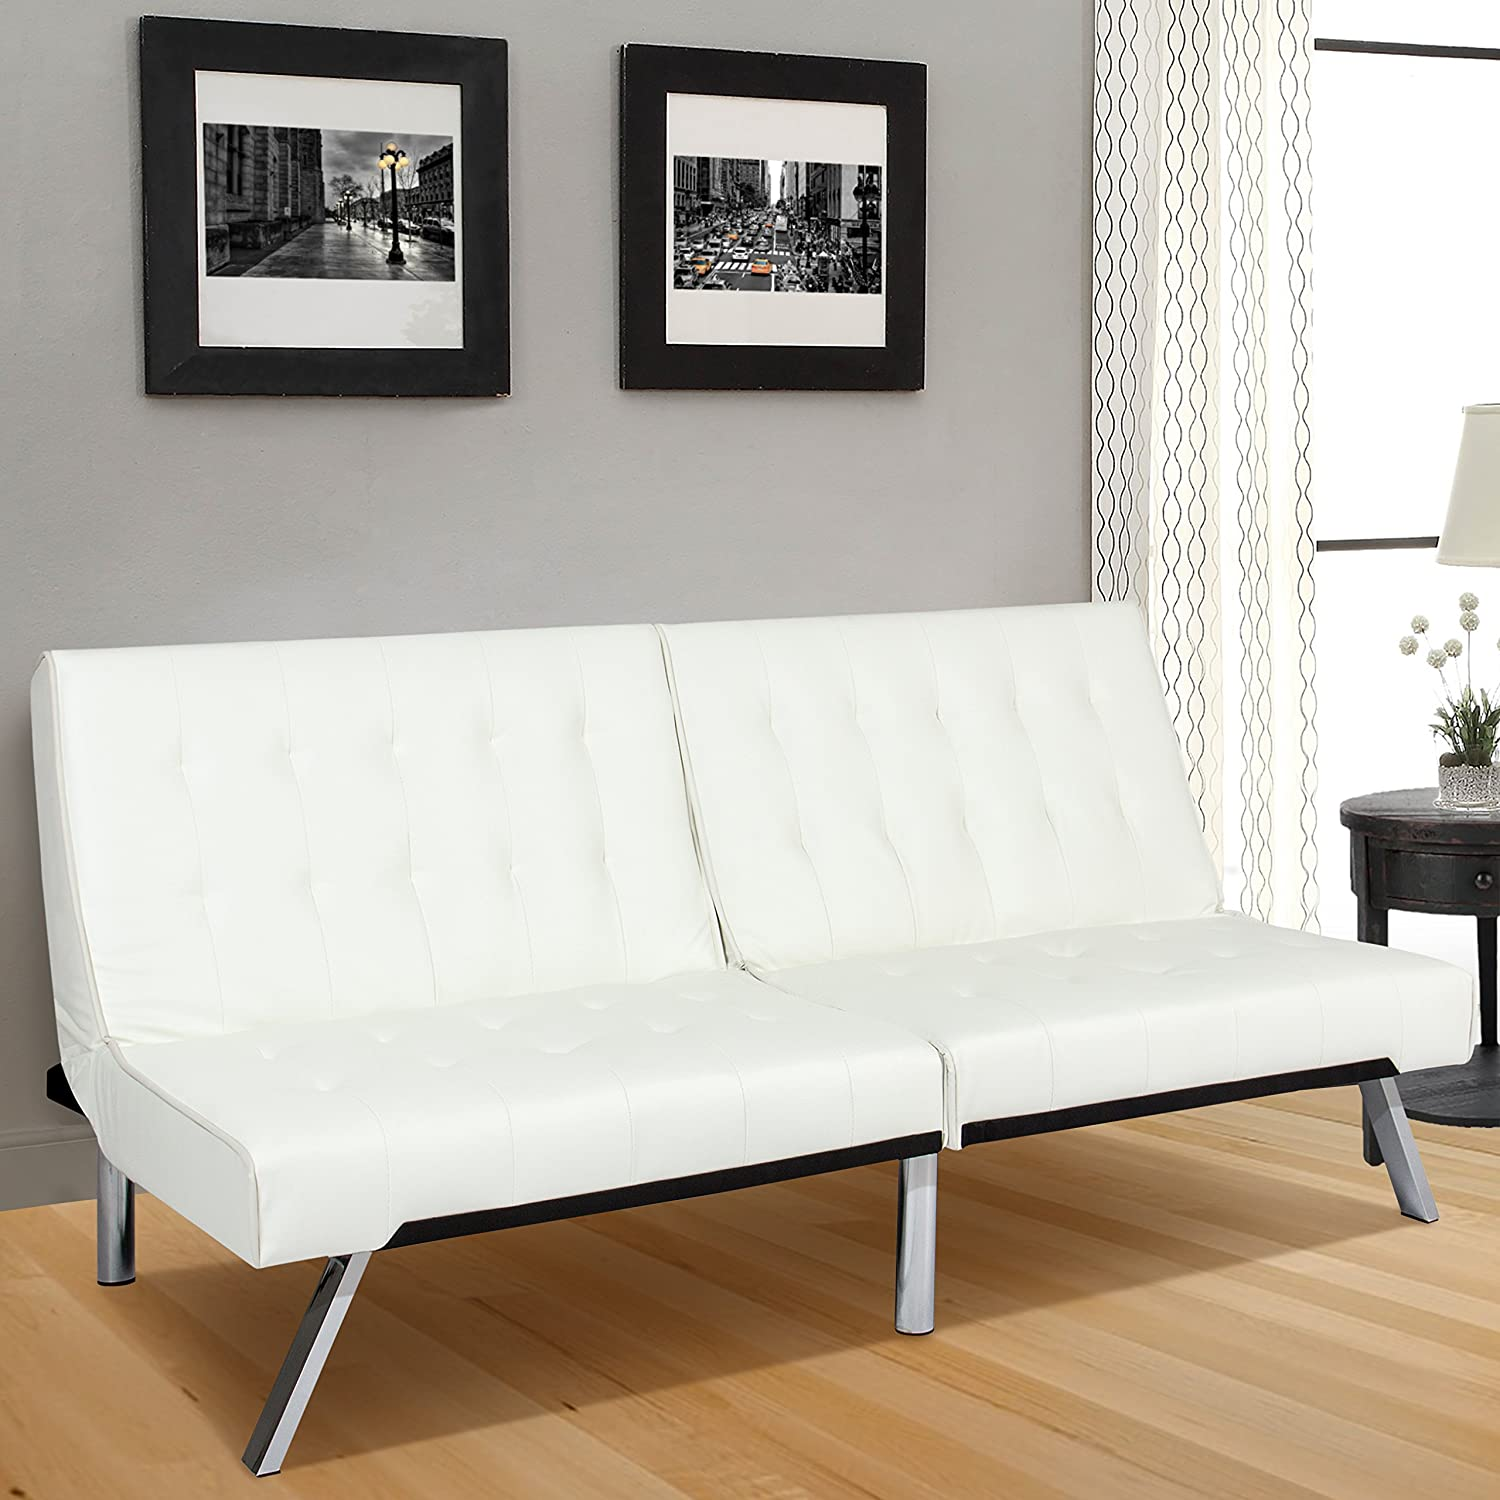 Amazon.com Best Choice Products Modern Leather Futon Sofa Bed Fold Up u0026 Down Couch Recliner Furniture White Home u0026 Kitchen & Amazon.com: Best Choice Products Modern Leather Futon Sofa Bed ... islam-shia.org